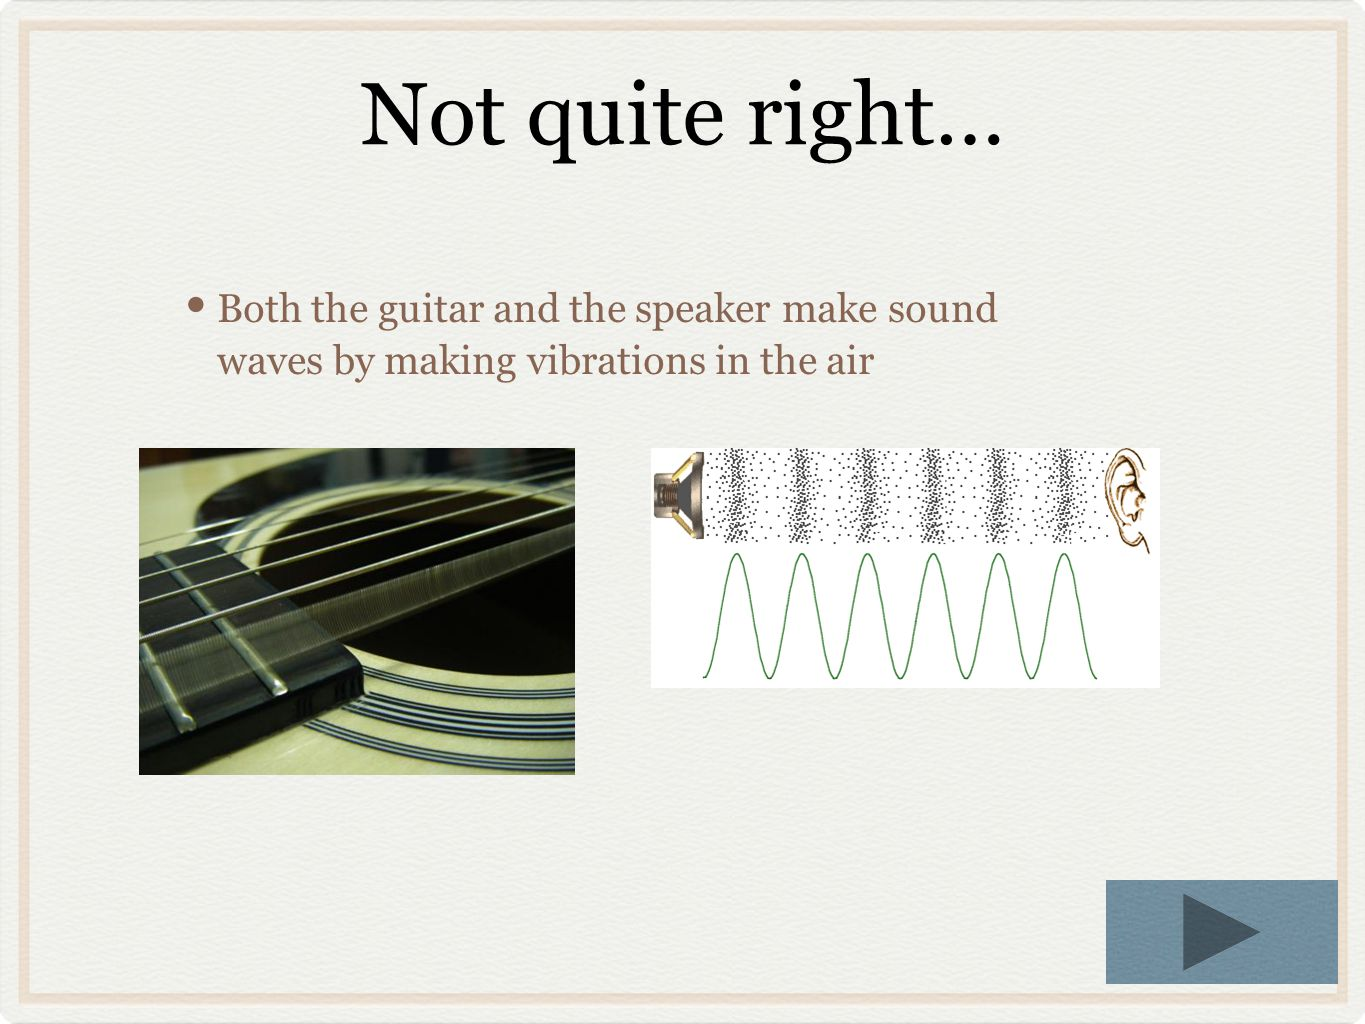 Not quite right… Both the guitar and the speaker make sound waves by making vibrations in the air